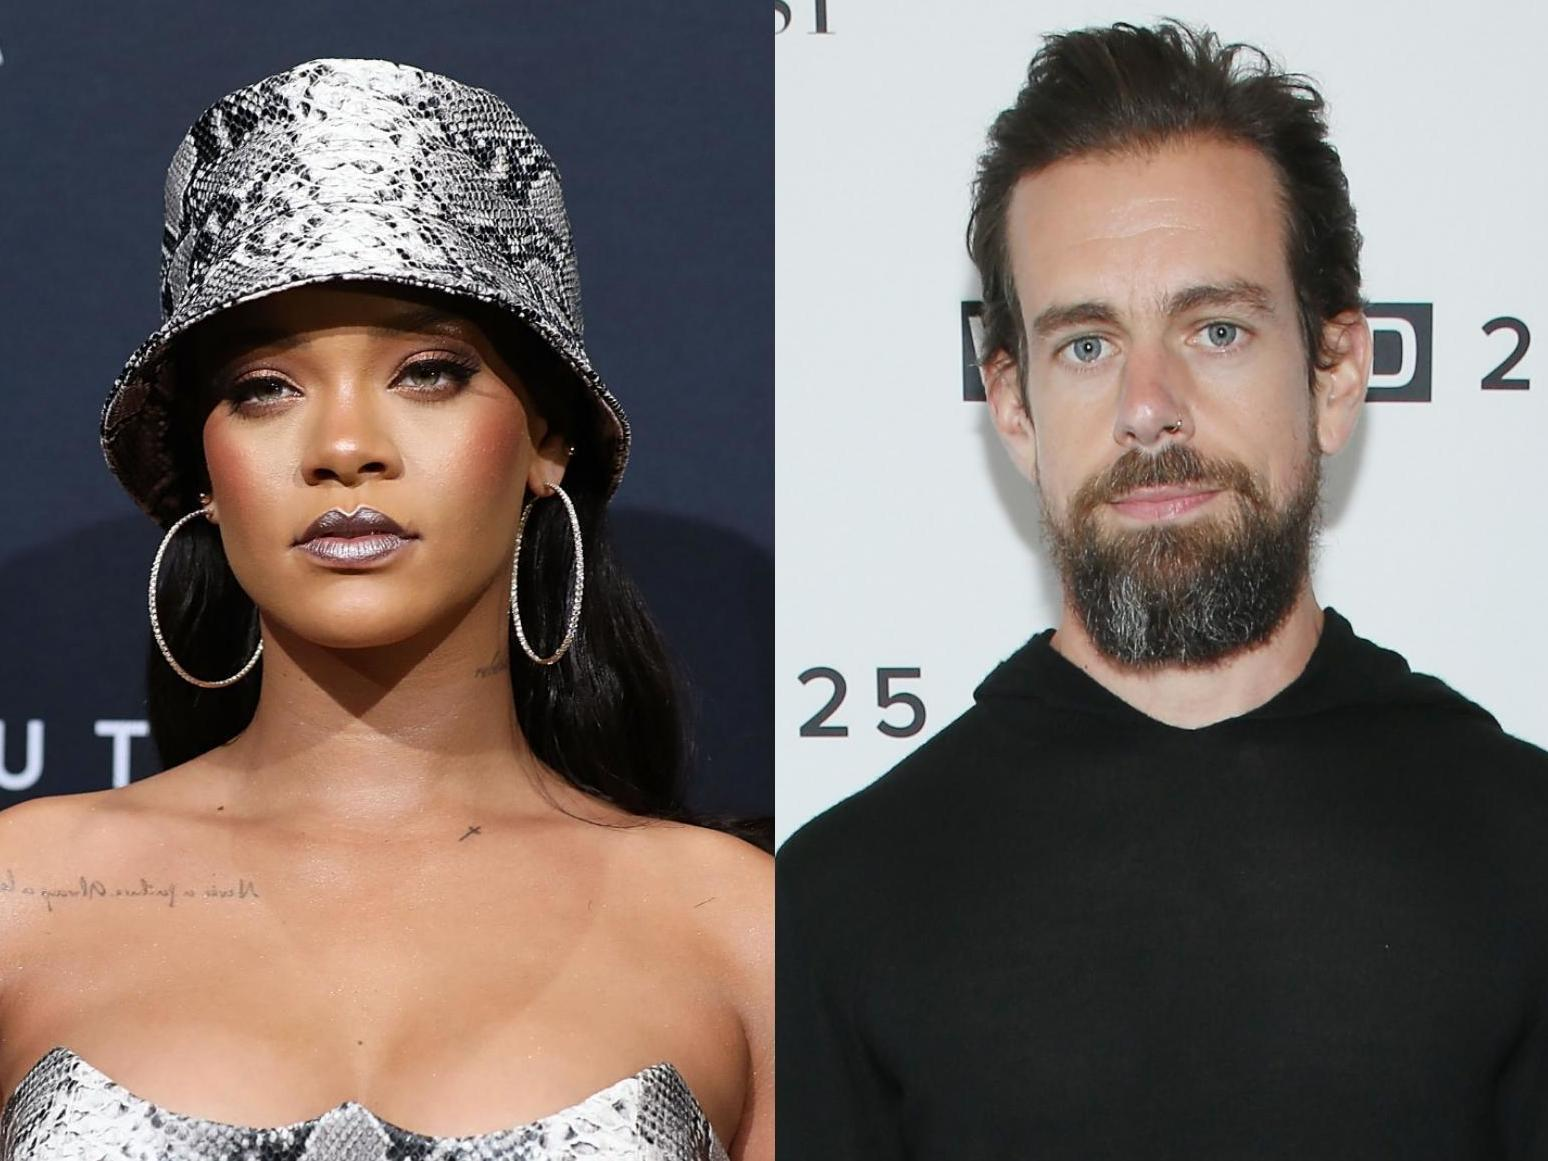 Rihanna And Twitter Ceo Jack Dorsey Donate 15m To Mental Health Services The Independent The Independent